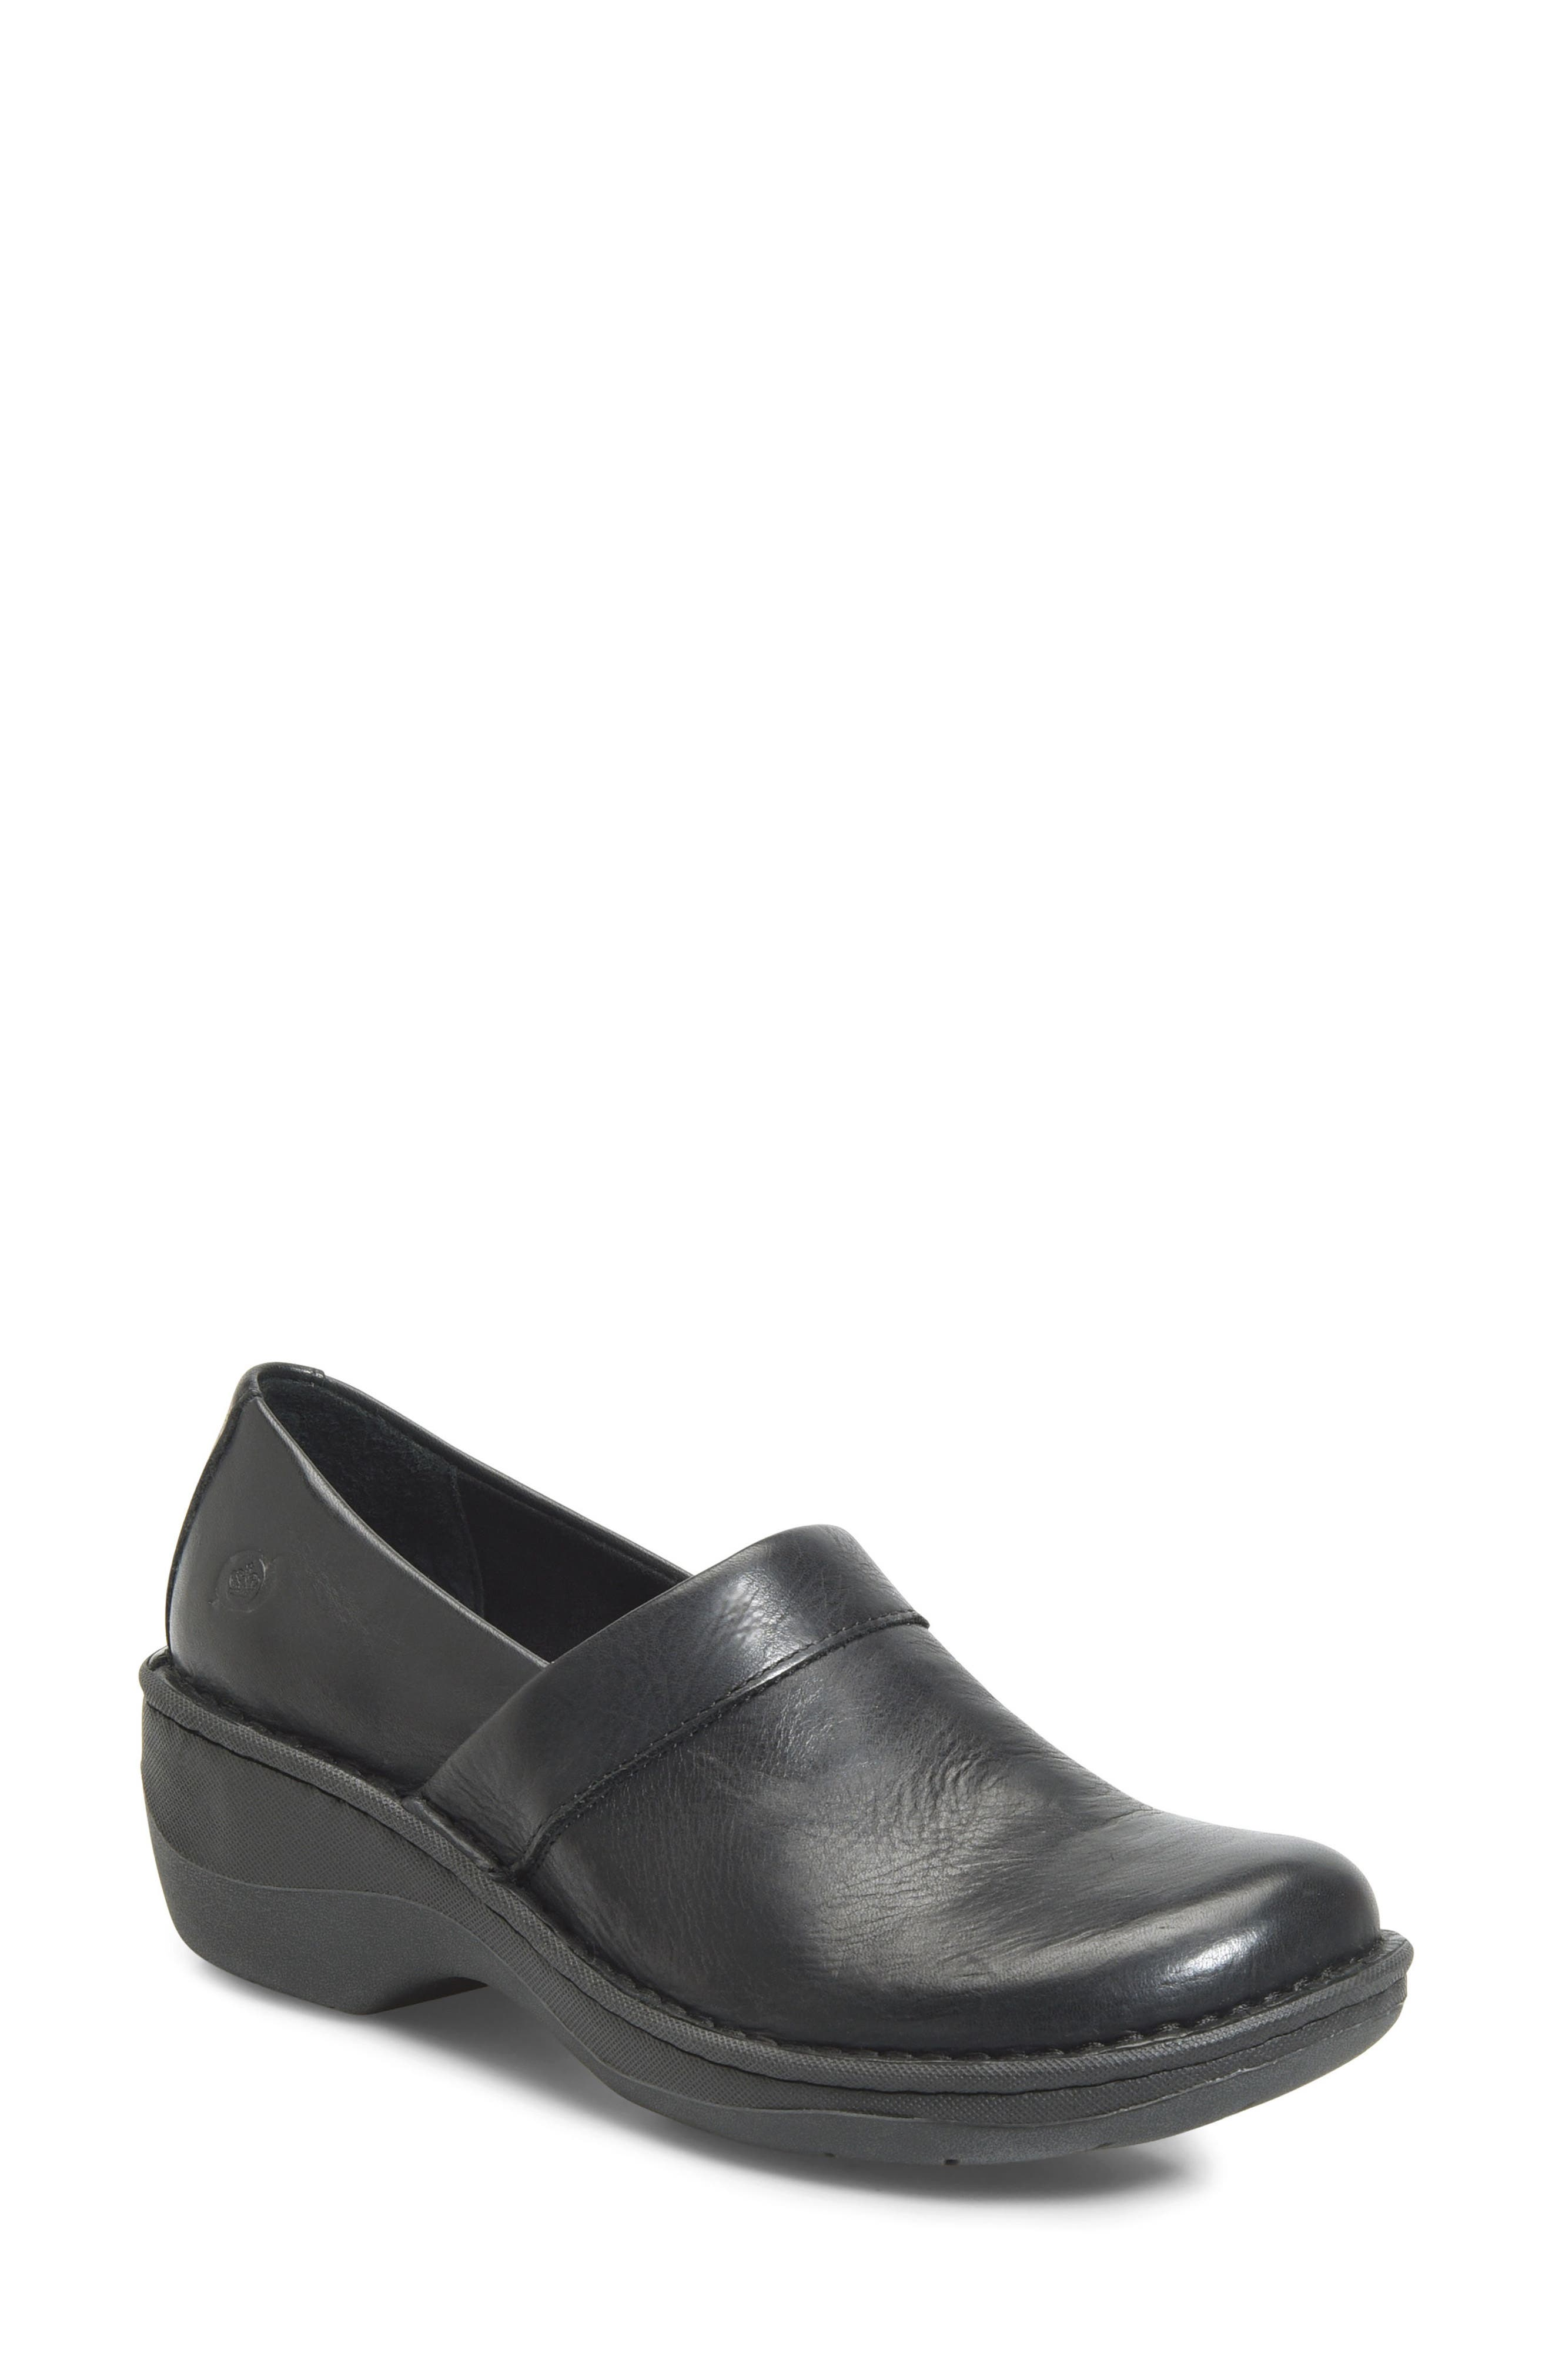 Born Askel Clog,                             Main thumbnail 1, color,                             Black Leather